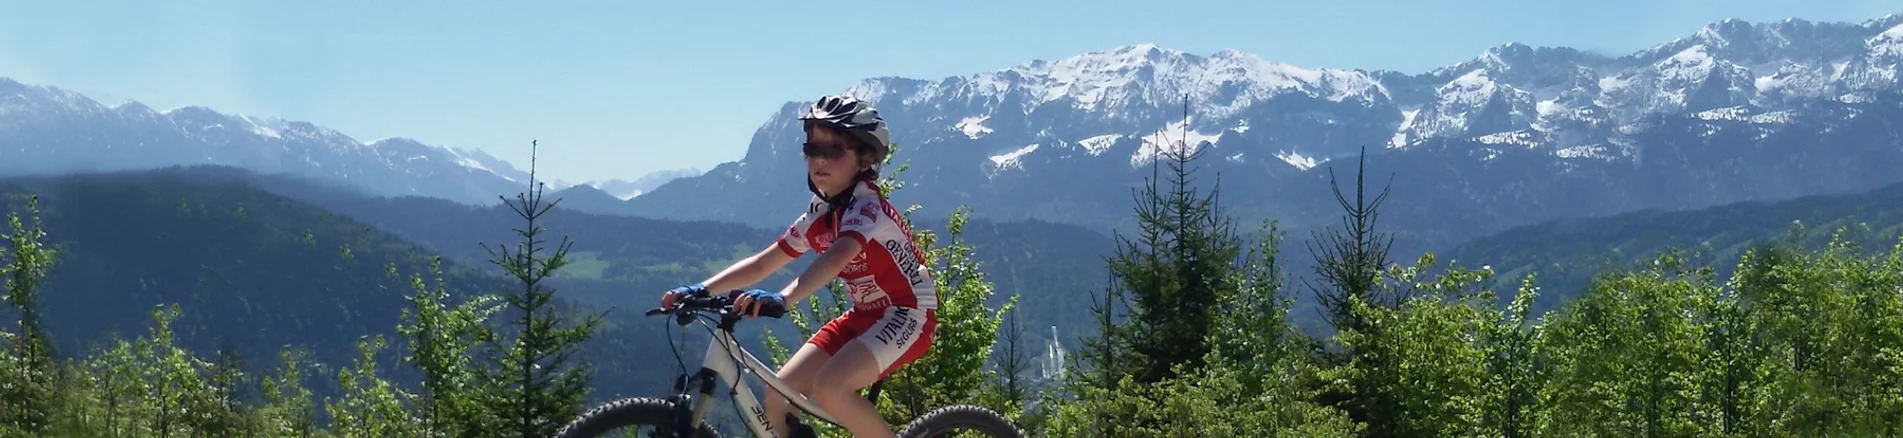 Girl rides ben-e-bike in the Alps